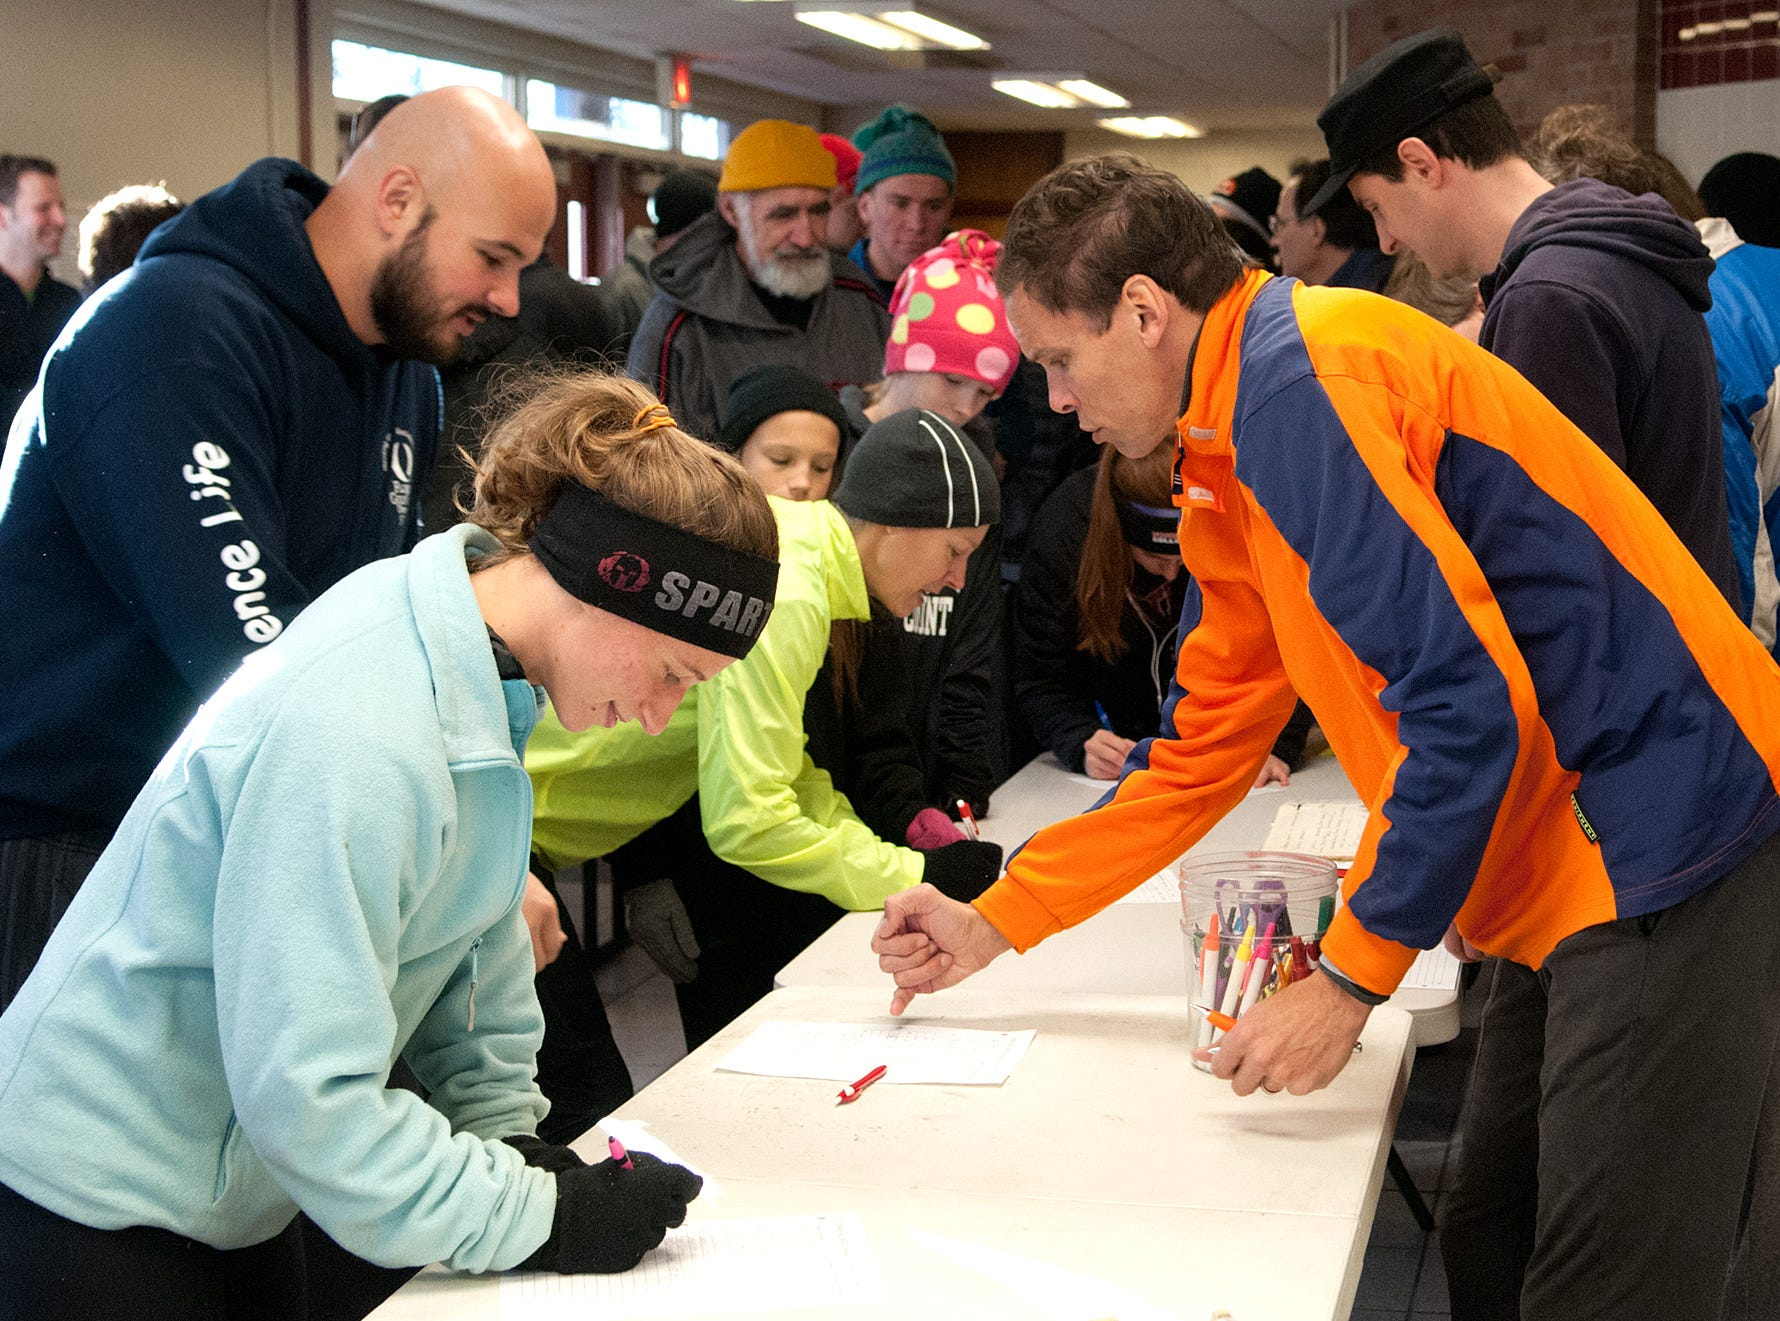 From 2013: There were 294 runners who signed up at Ithaca High School before the 41st annual Thanksgiving Day Turkey Trot.